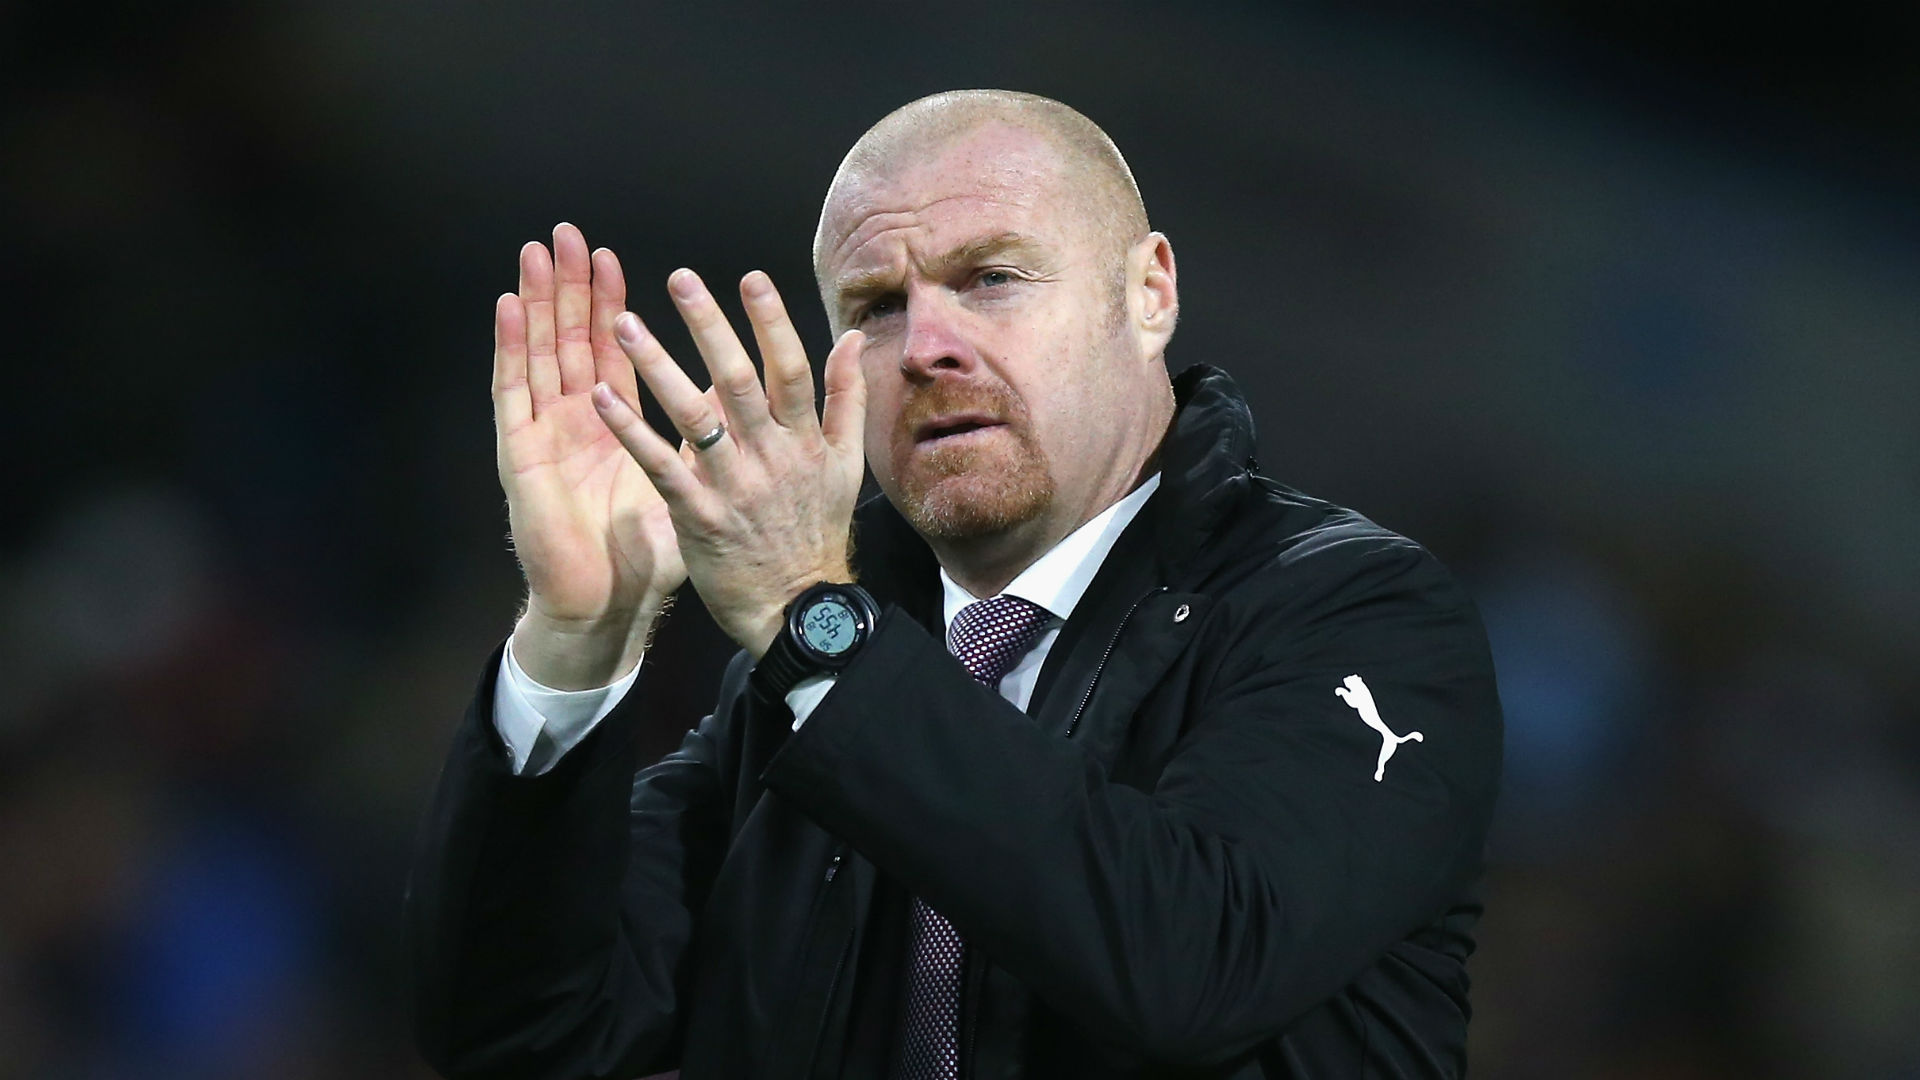 Burnley go fourth after last-gasp victor against Stoke